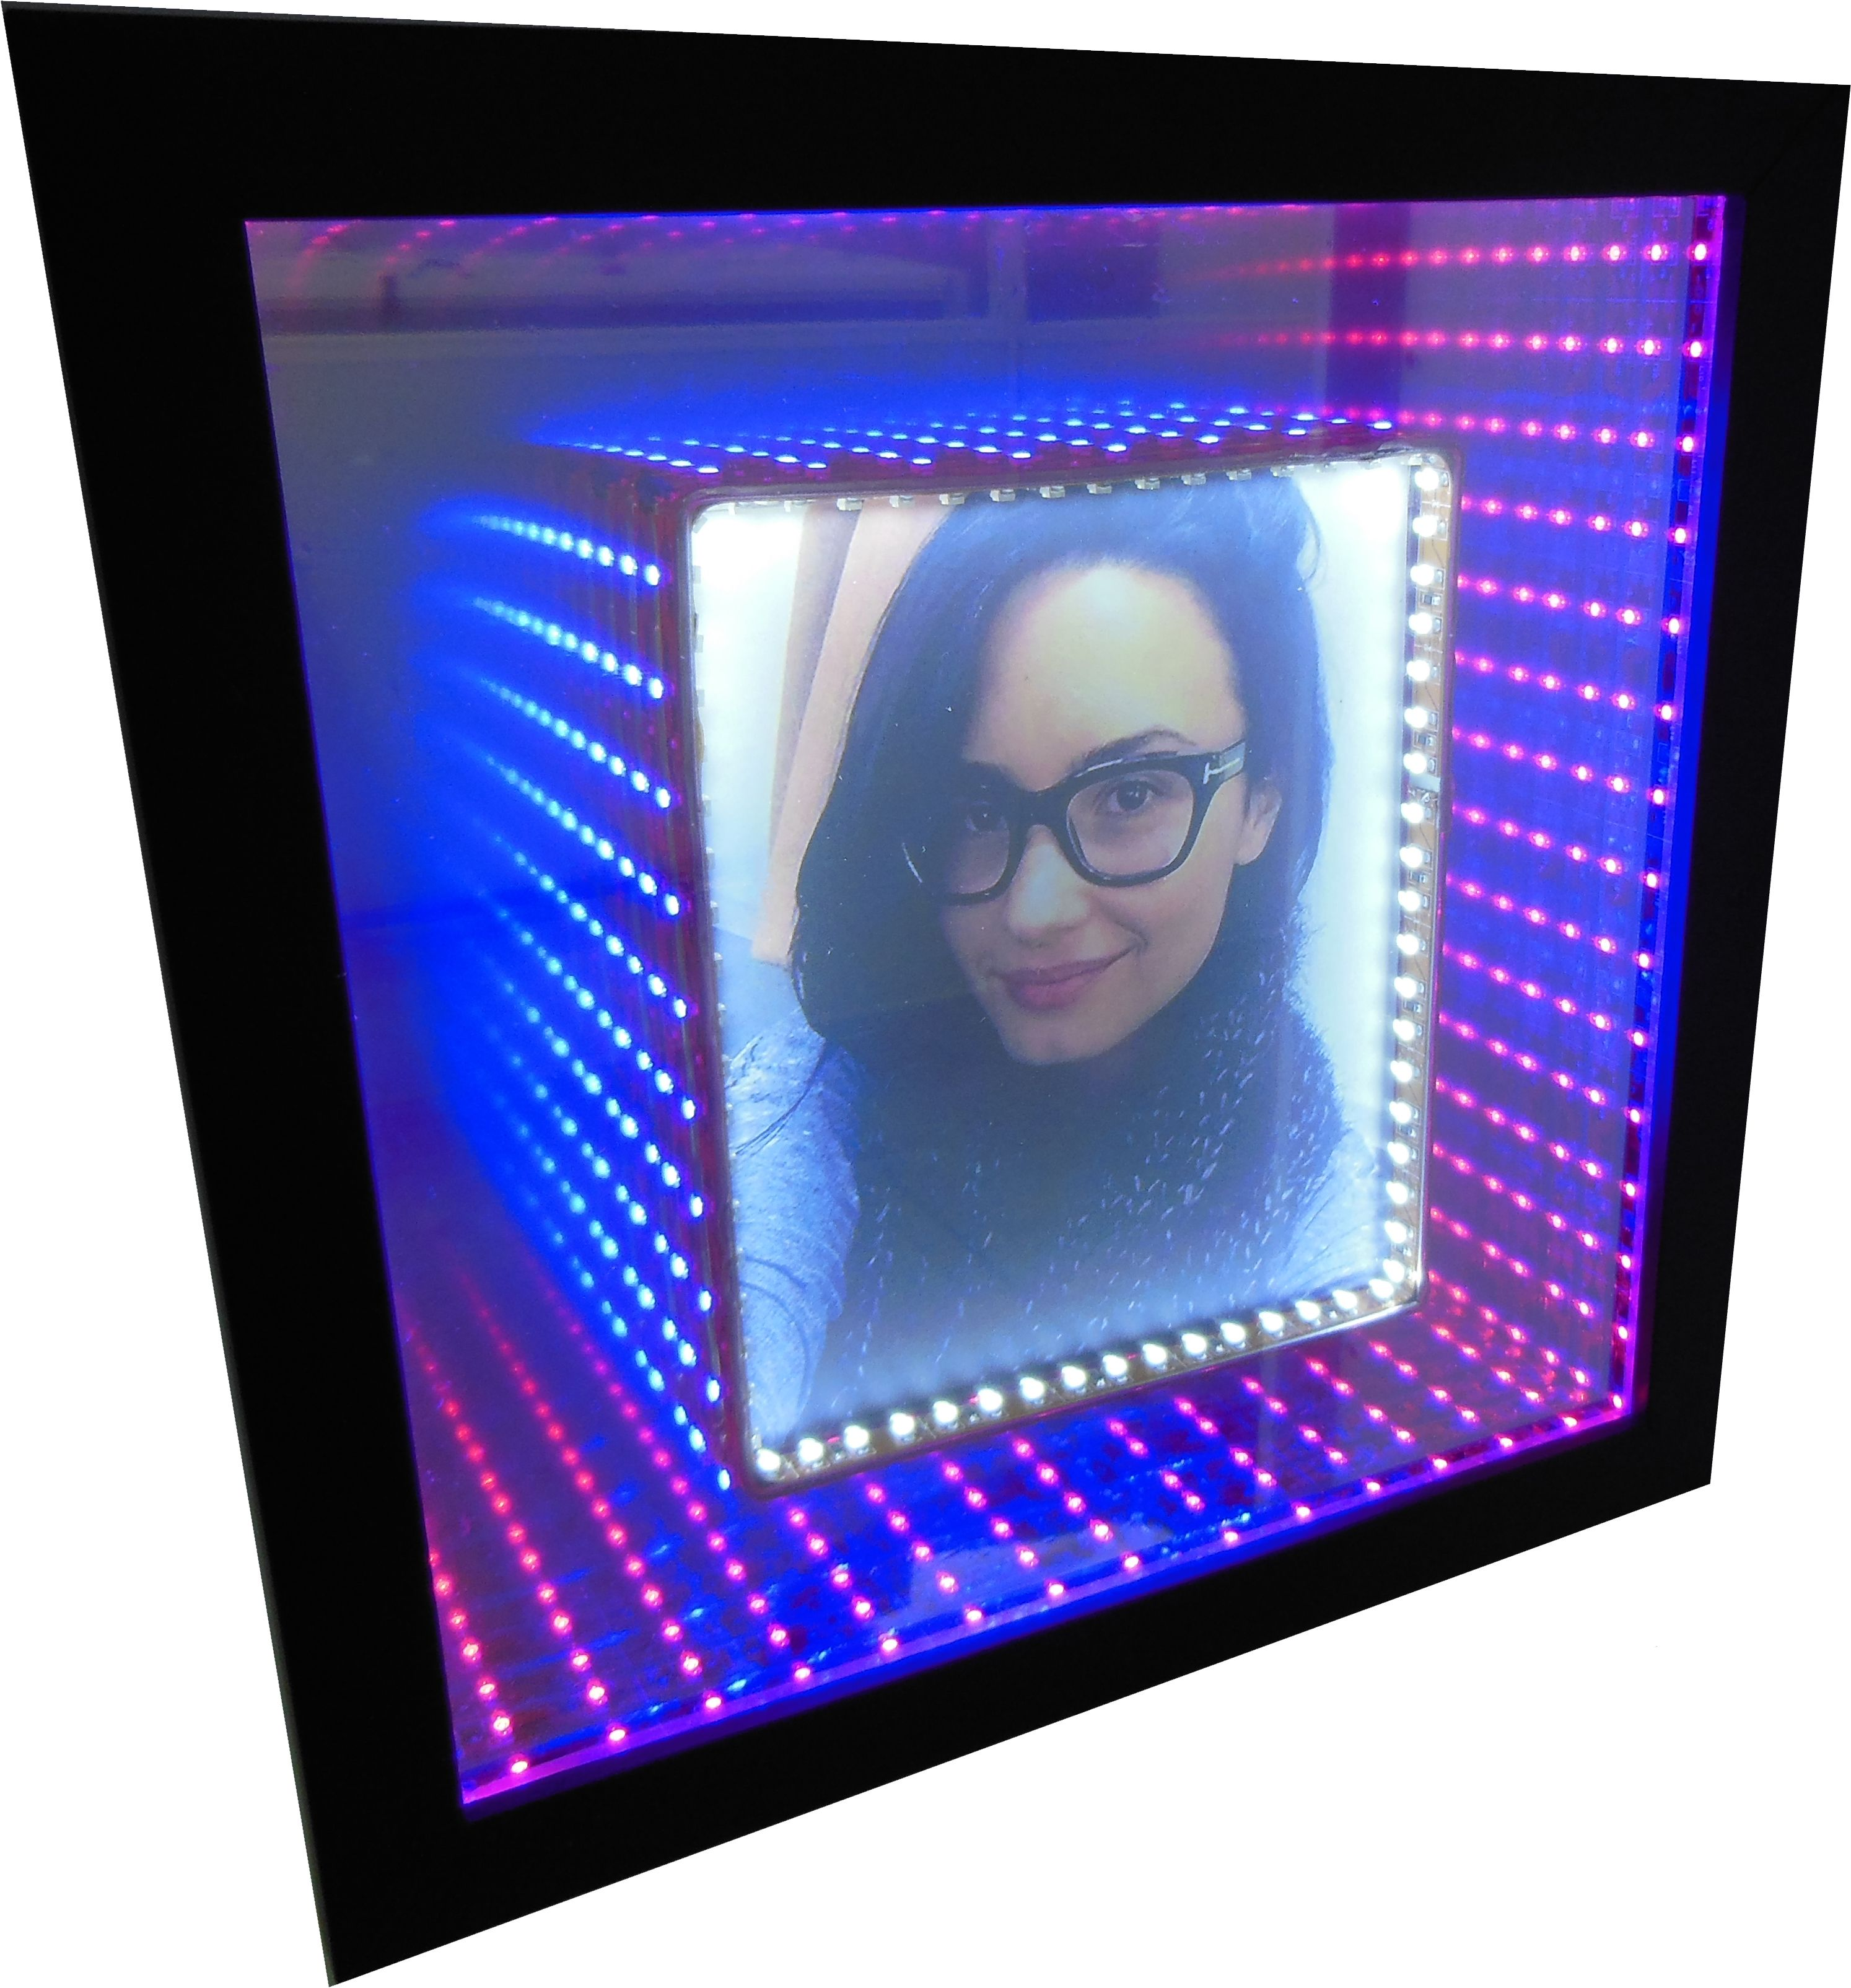 Infinity led frame demi lovato symtronic infinity led frame demi lovato symtronic jeuxipadfo Image collections